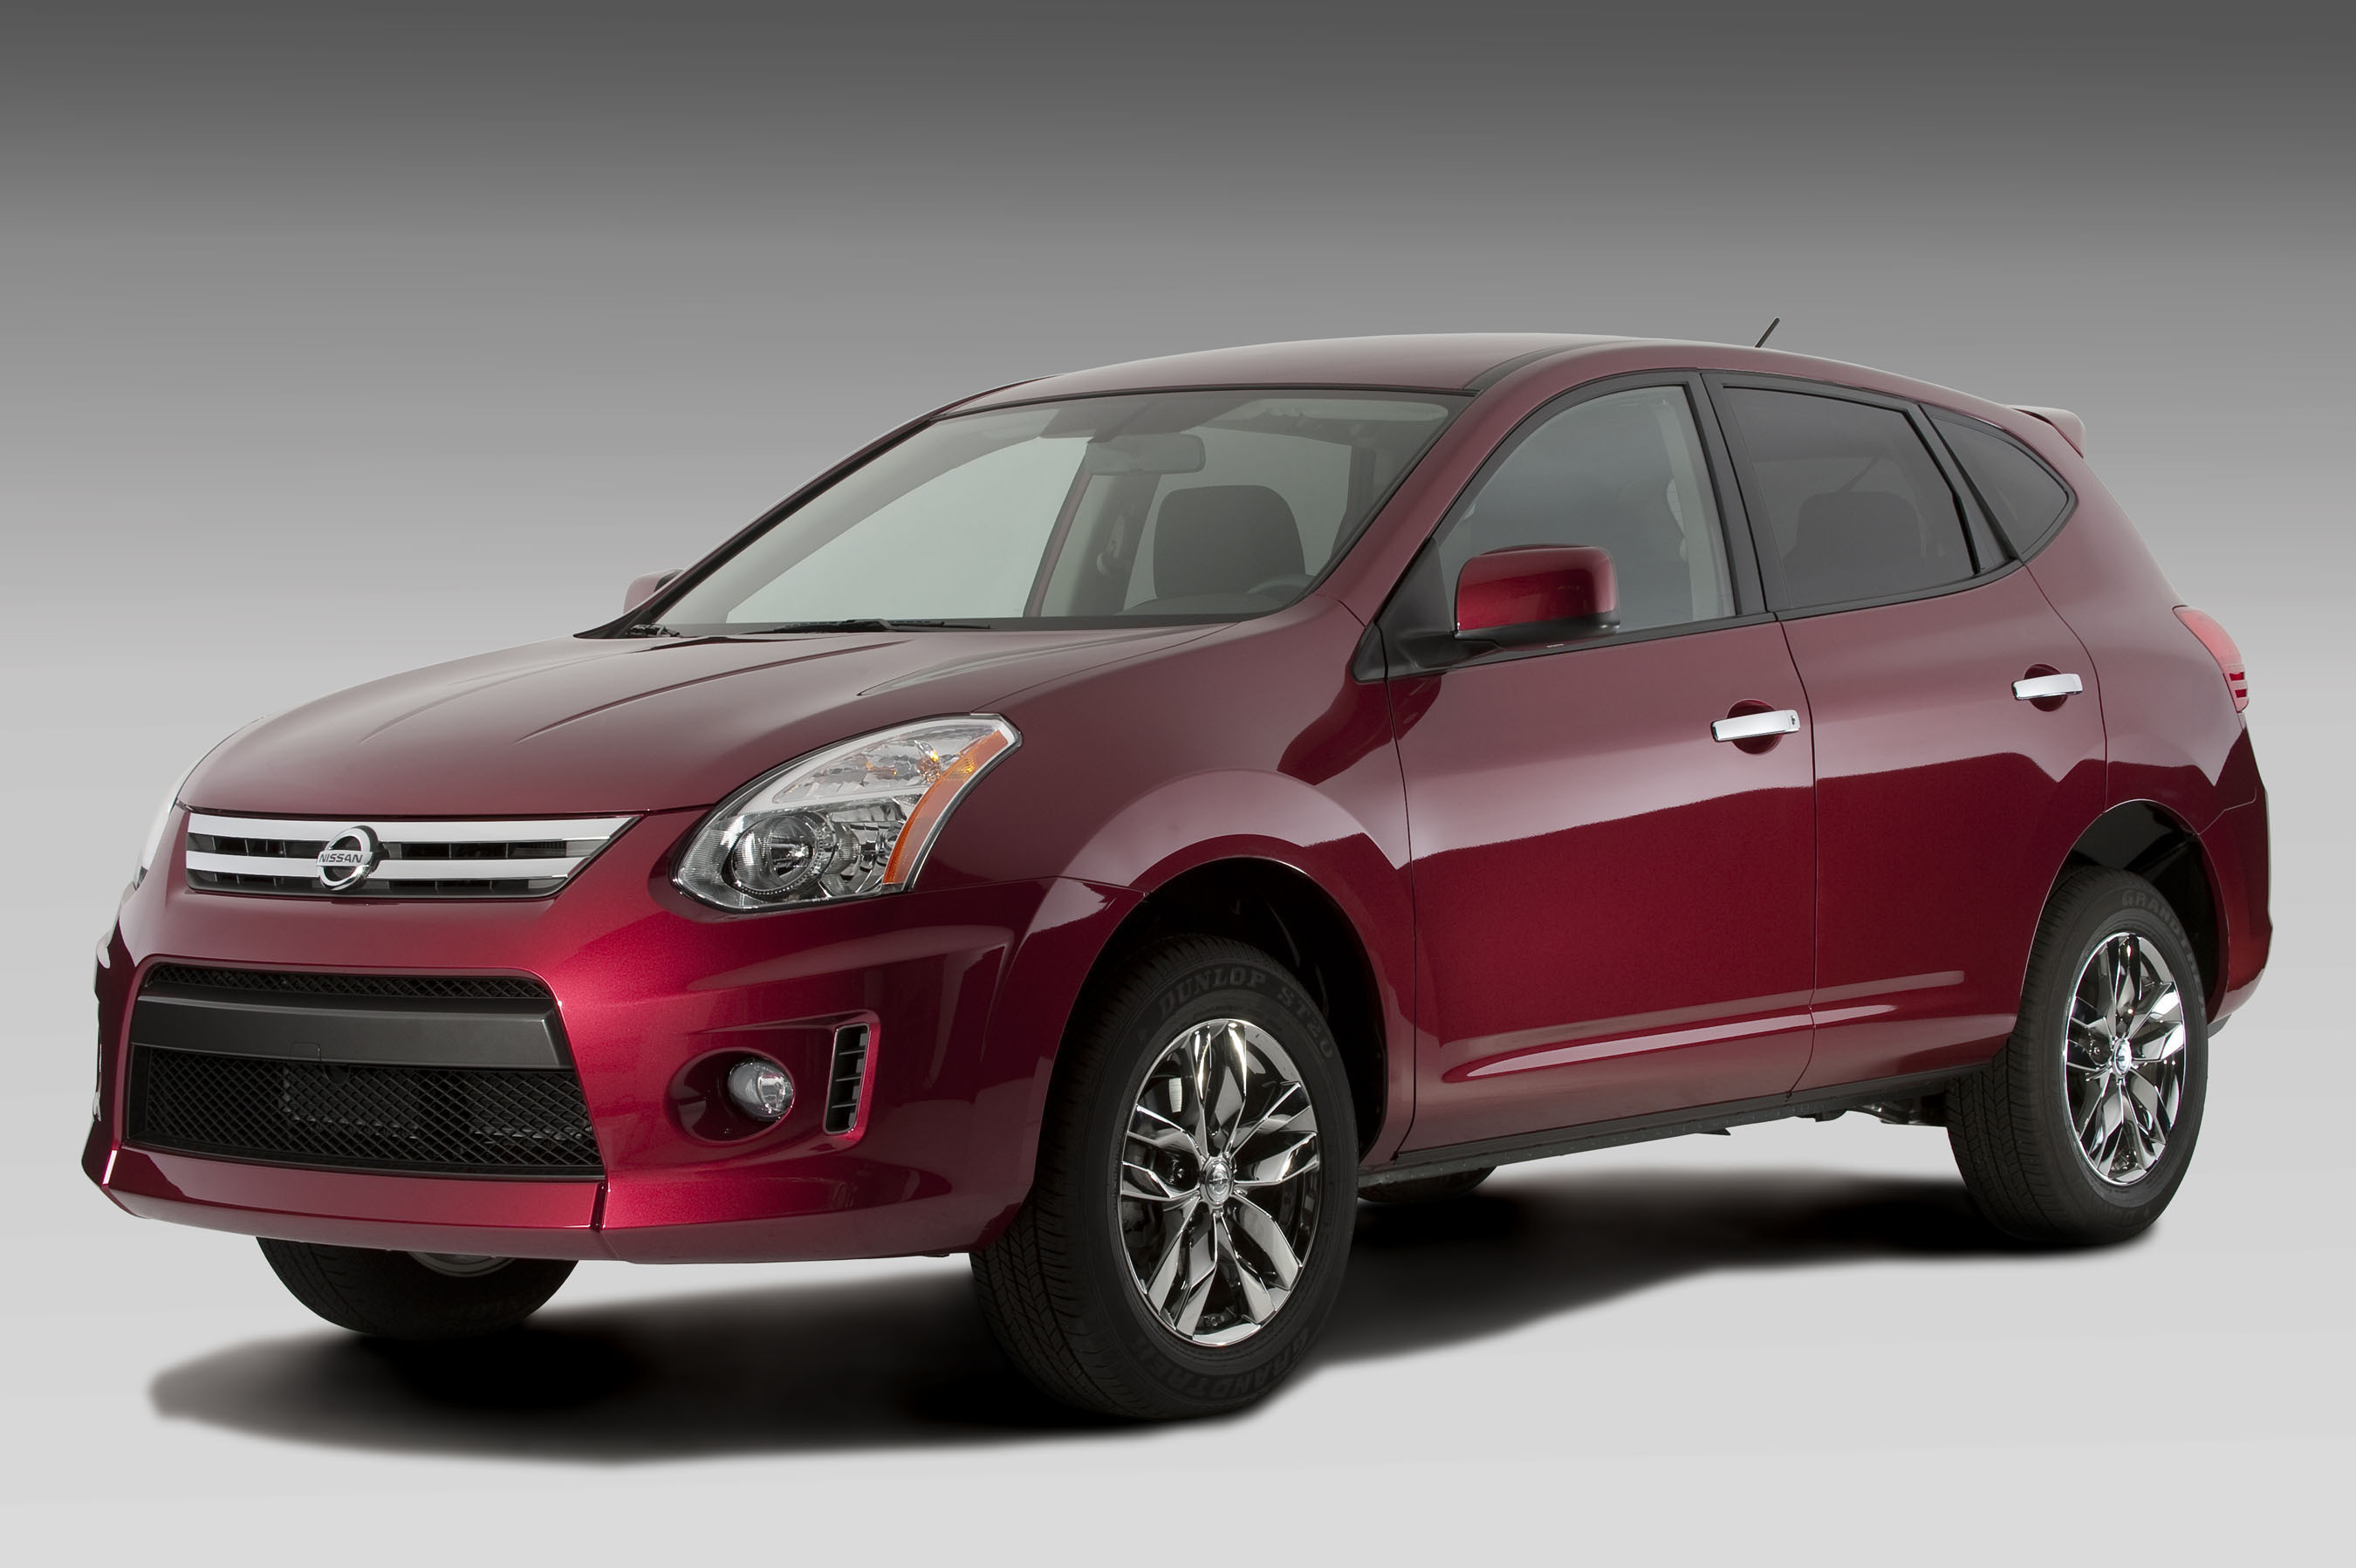 2010 nissan rogue s krom edition prices announced news top speed. Black Bedroom Furniture Sets. Home Design Ideas